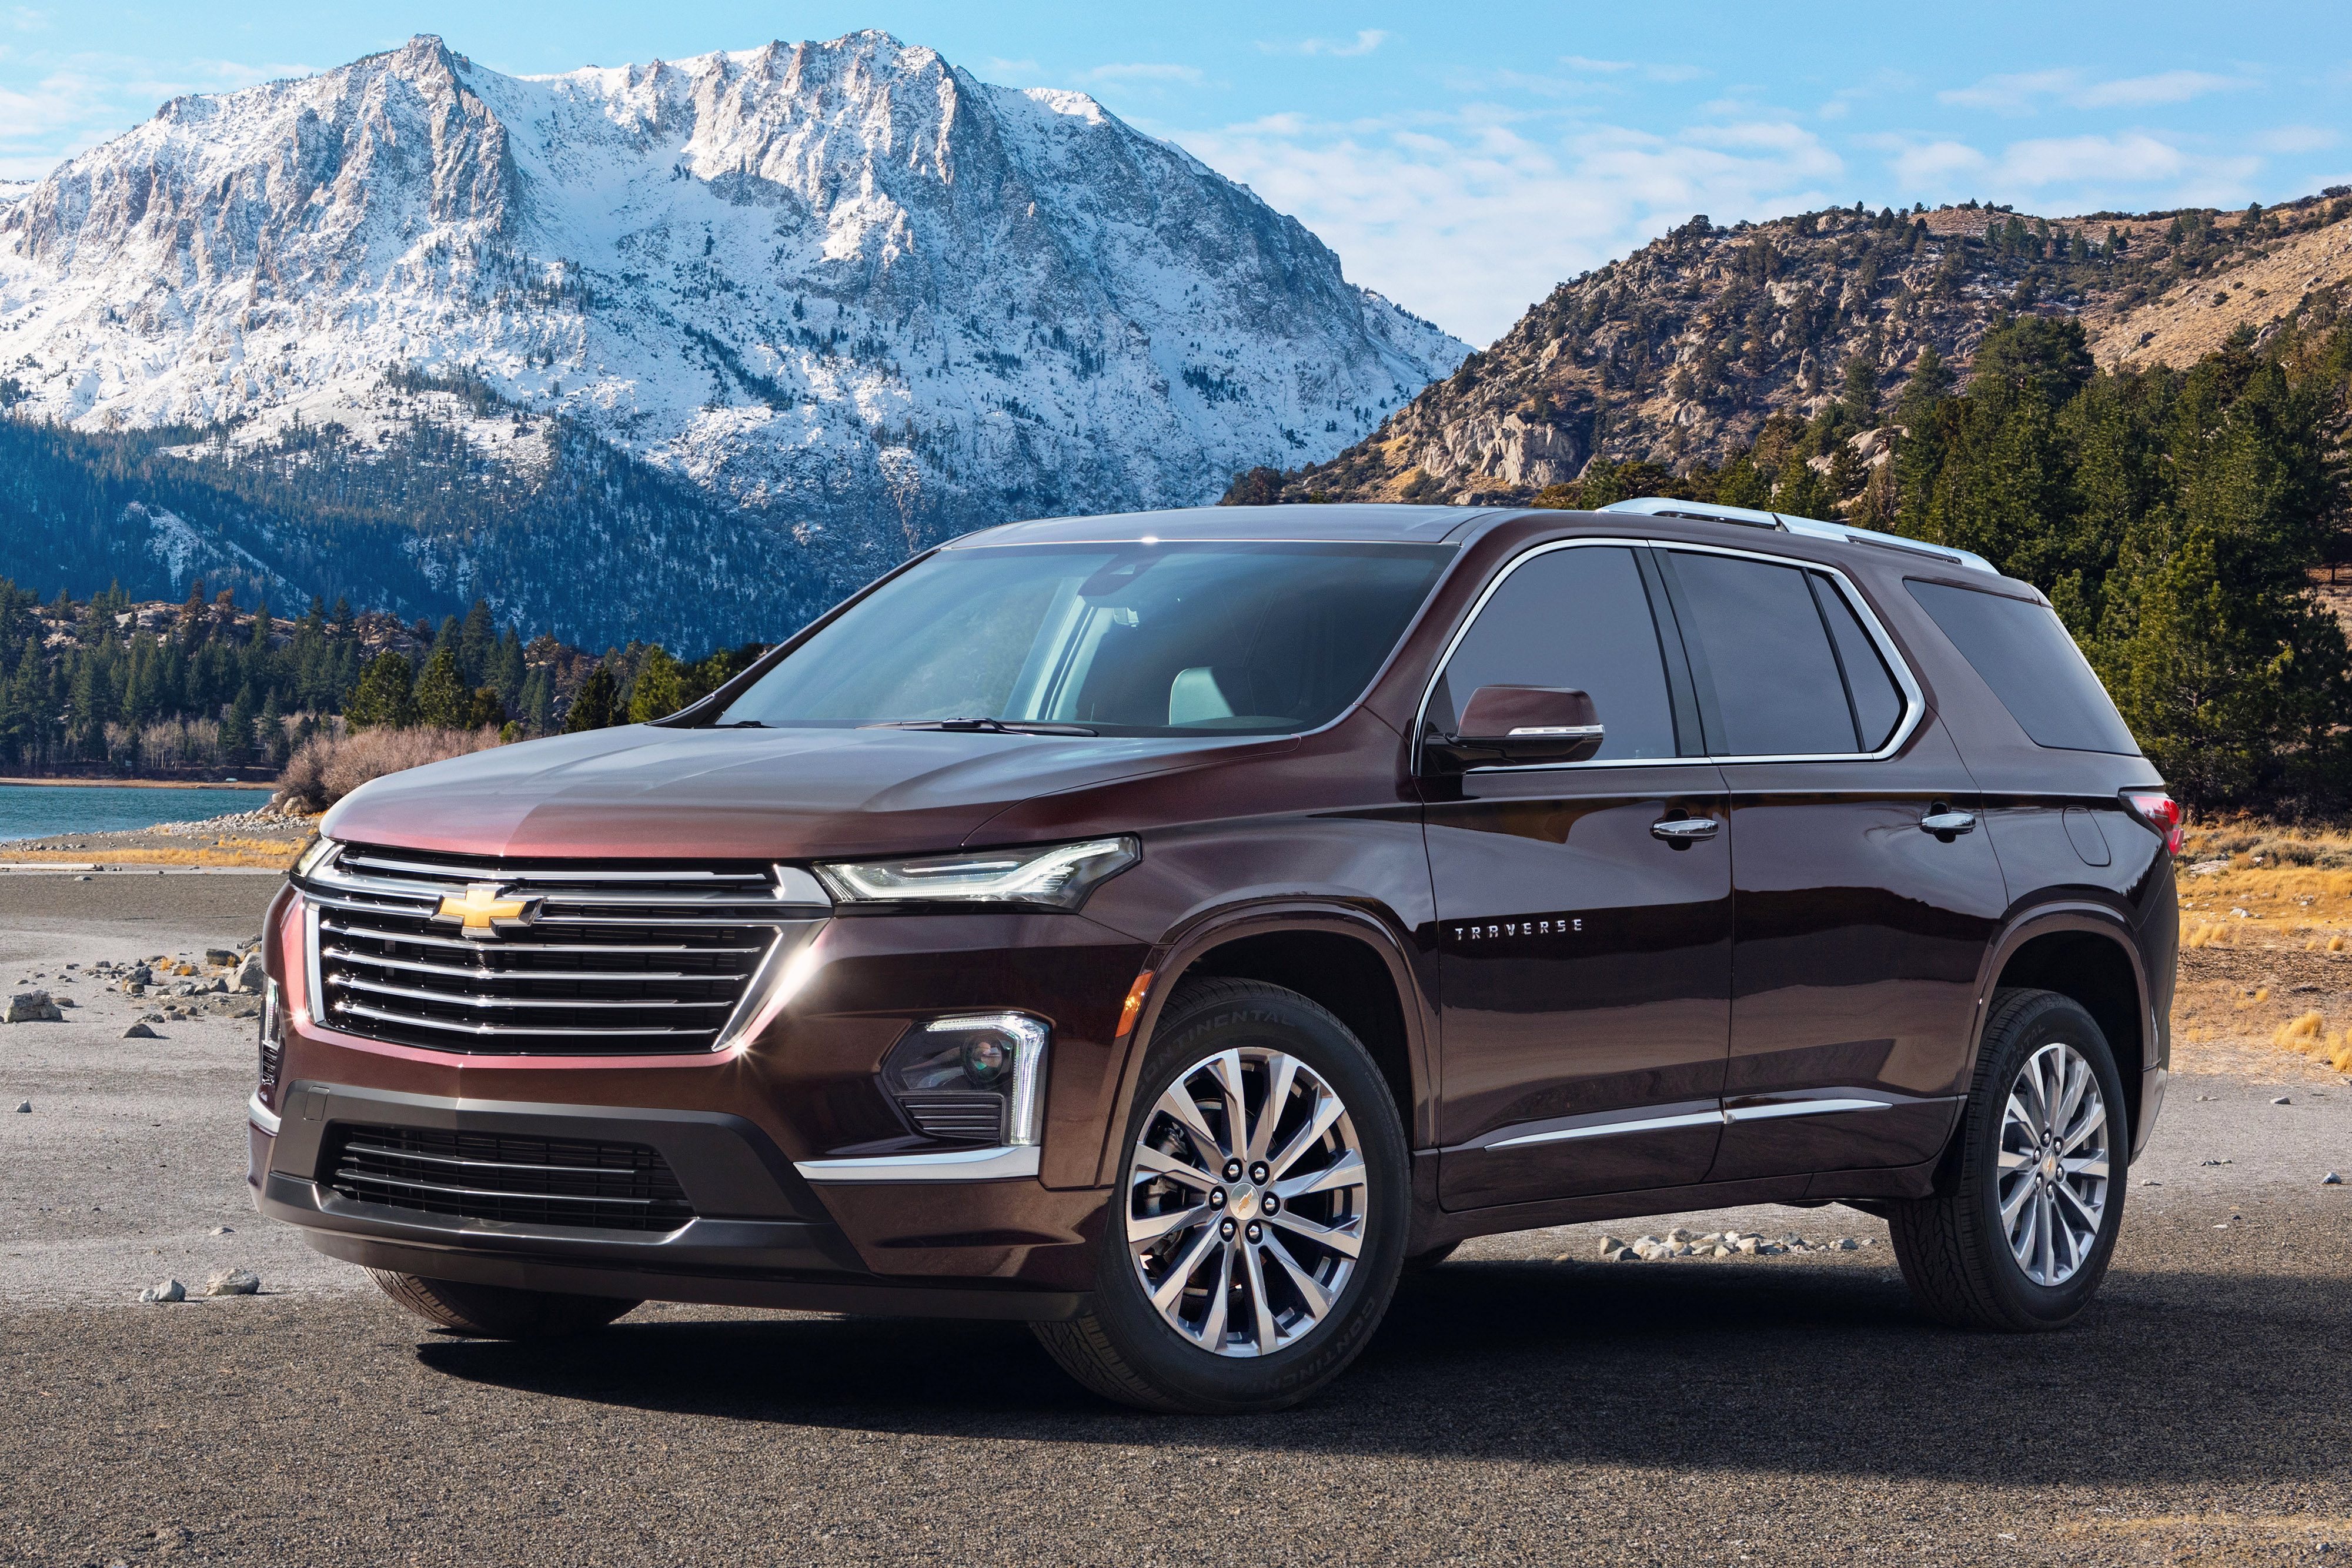 Refreshed Chevy Traverse Takes Safer Route Into 2021